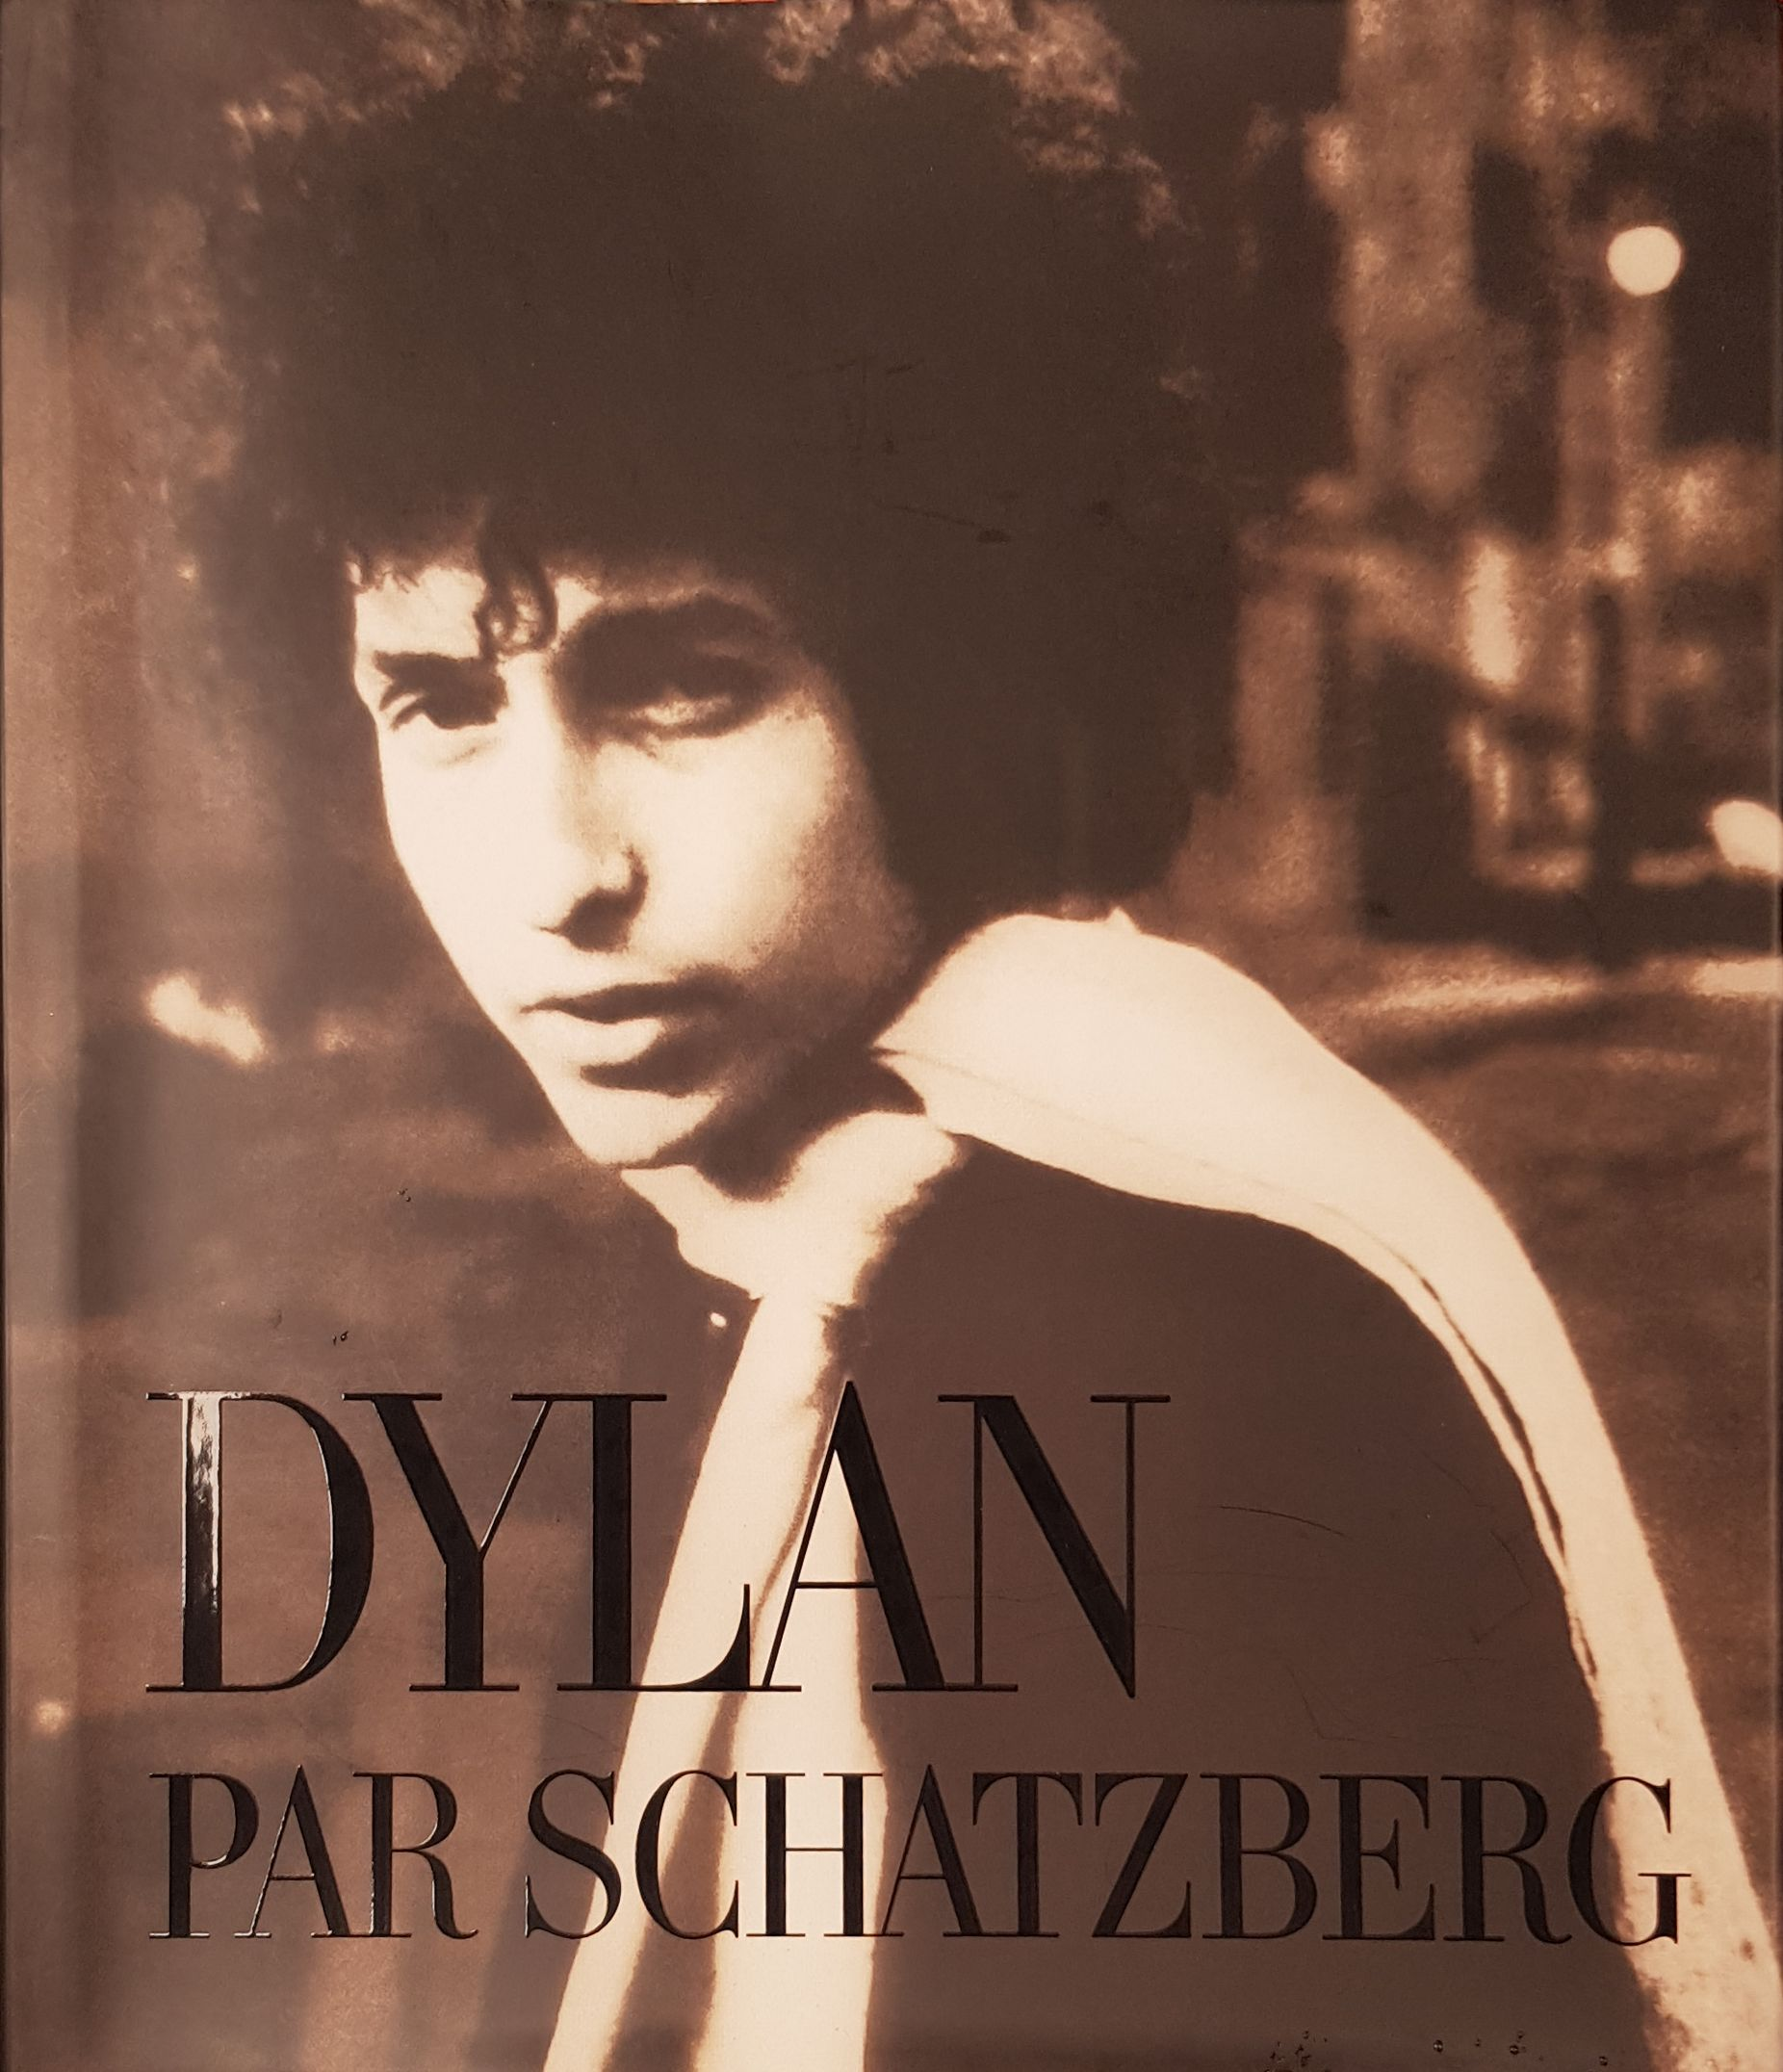 dylan par schatzberg book in French